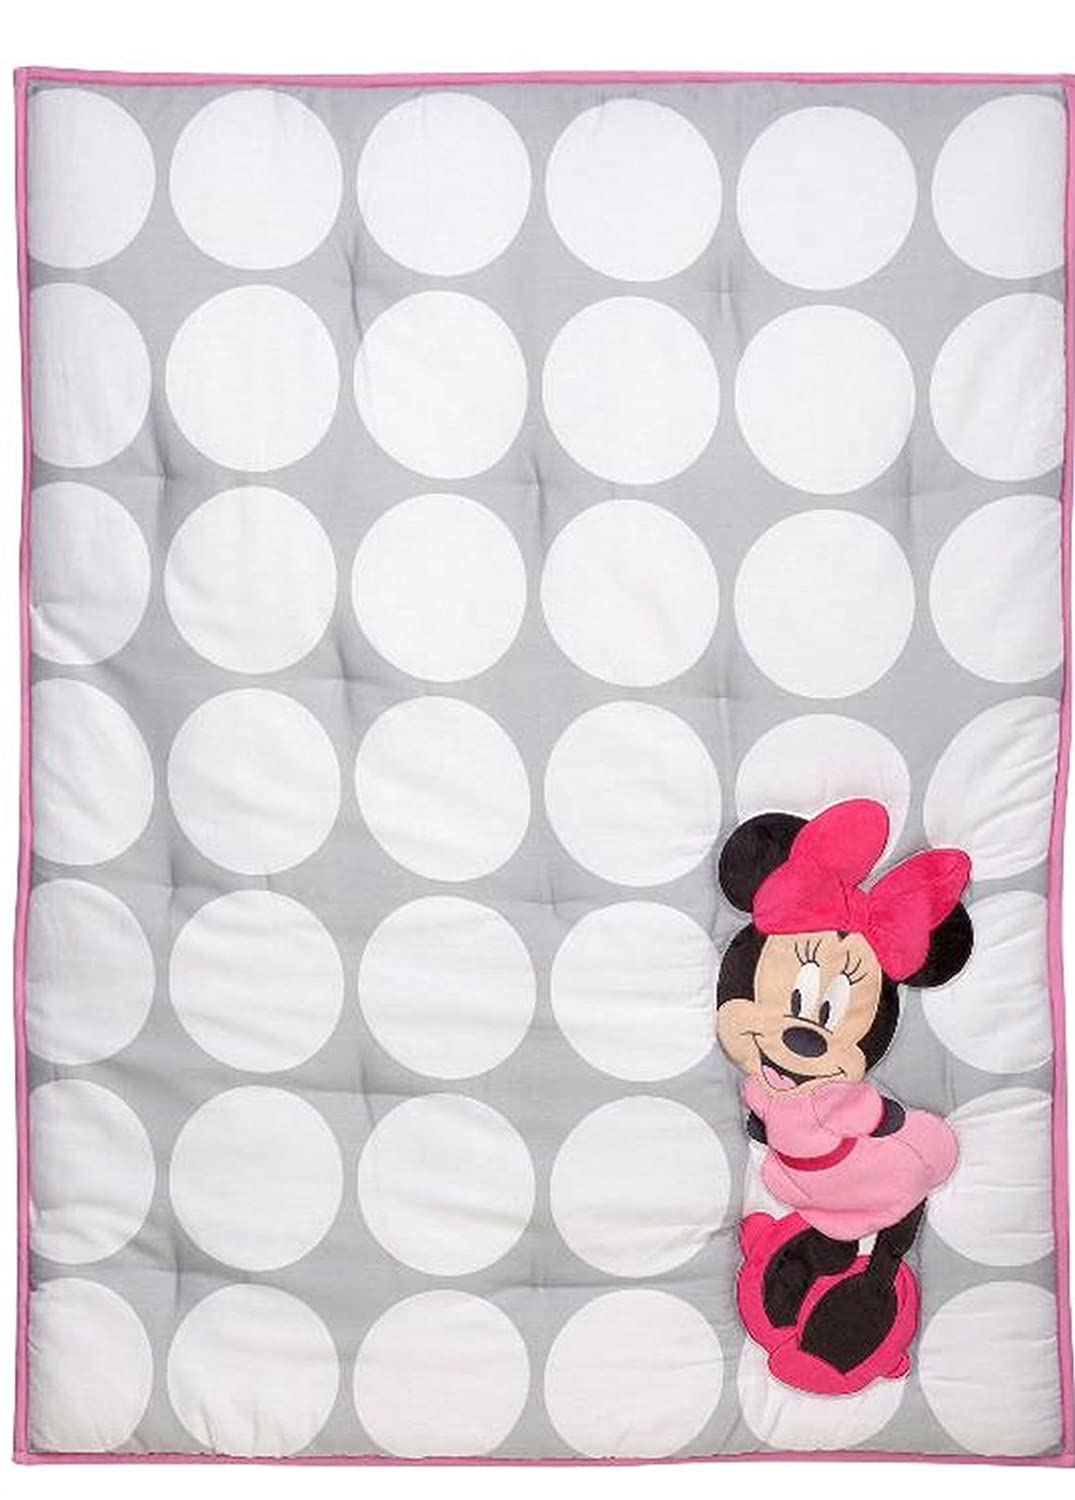 Disney Minnie Mouse Polka Dots Baby Crib or Stroller - Quilted Appliqued (Comforter Only) Crown crafts company